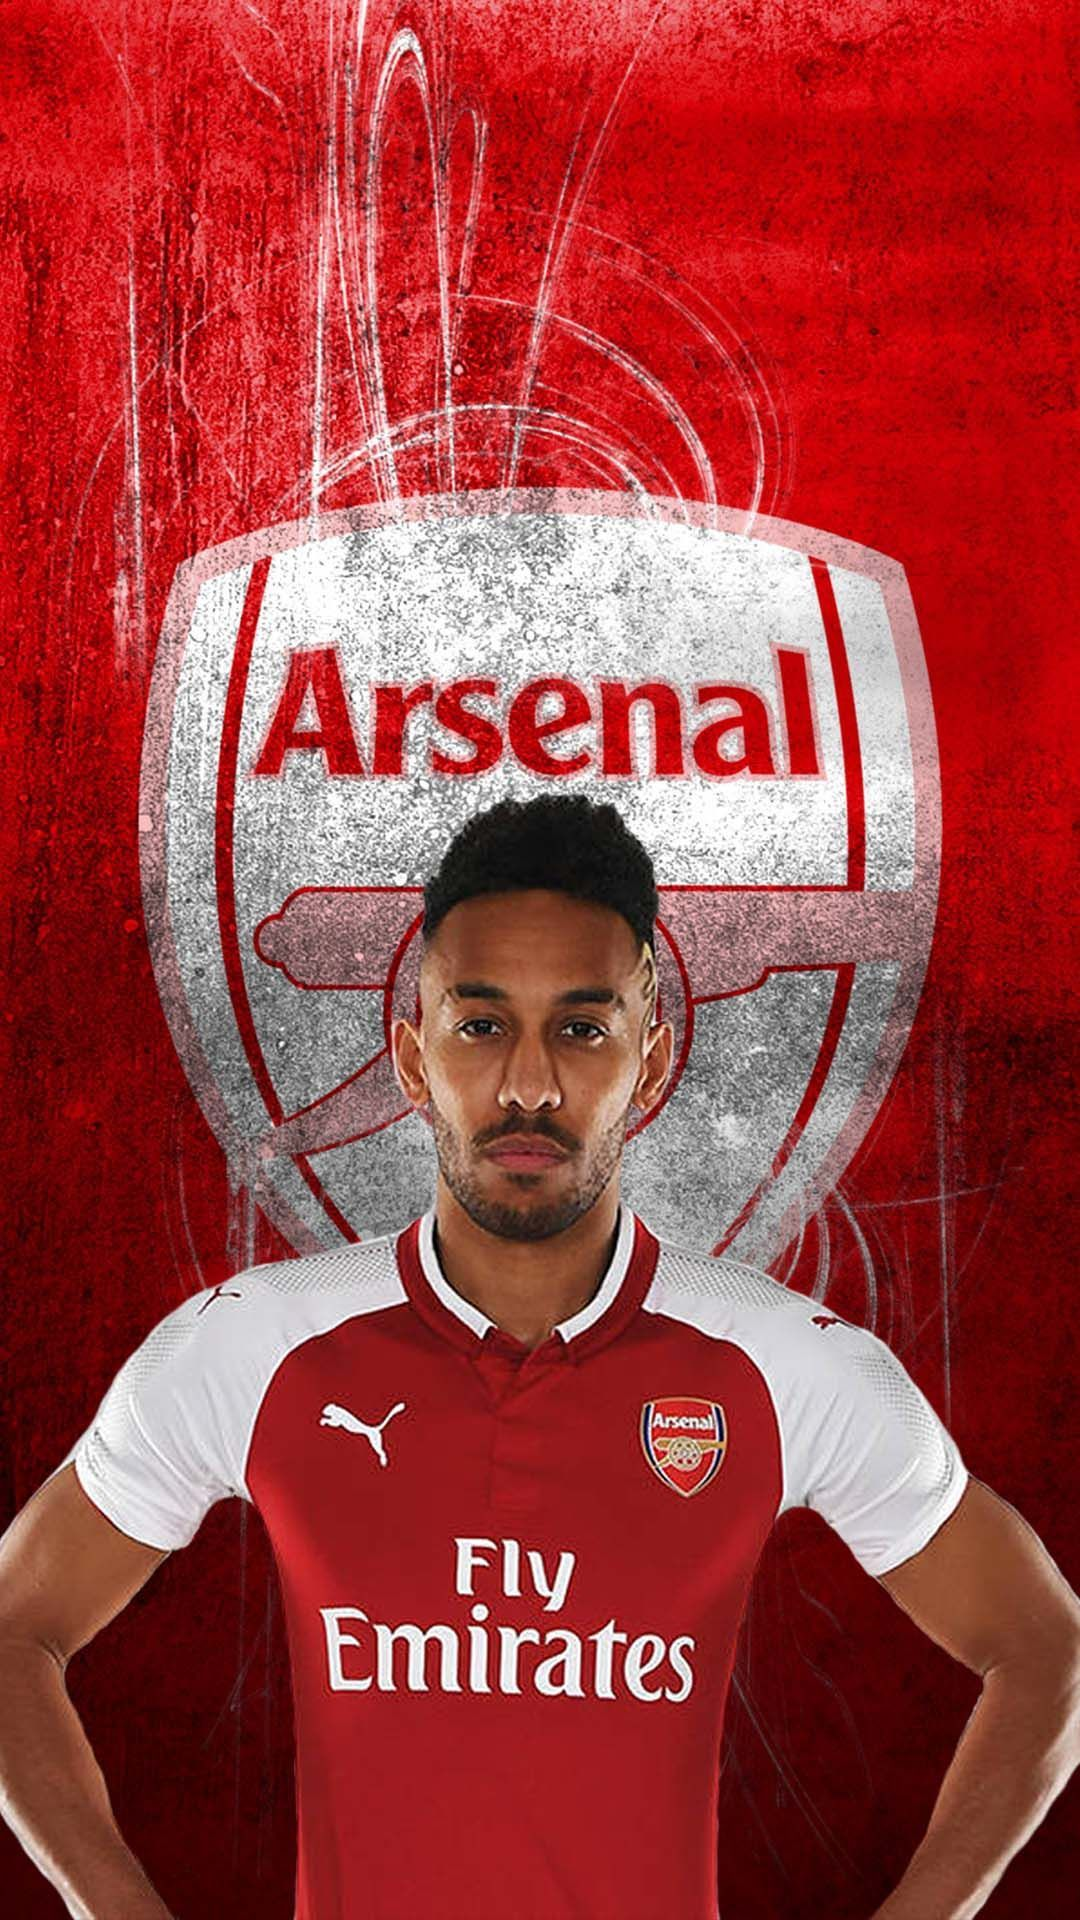 Aubameyang Arsenal Android Wallpaper Best Android Wallpapers